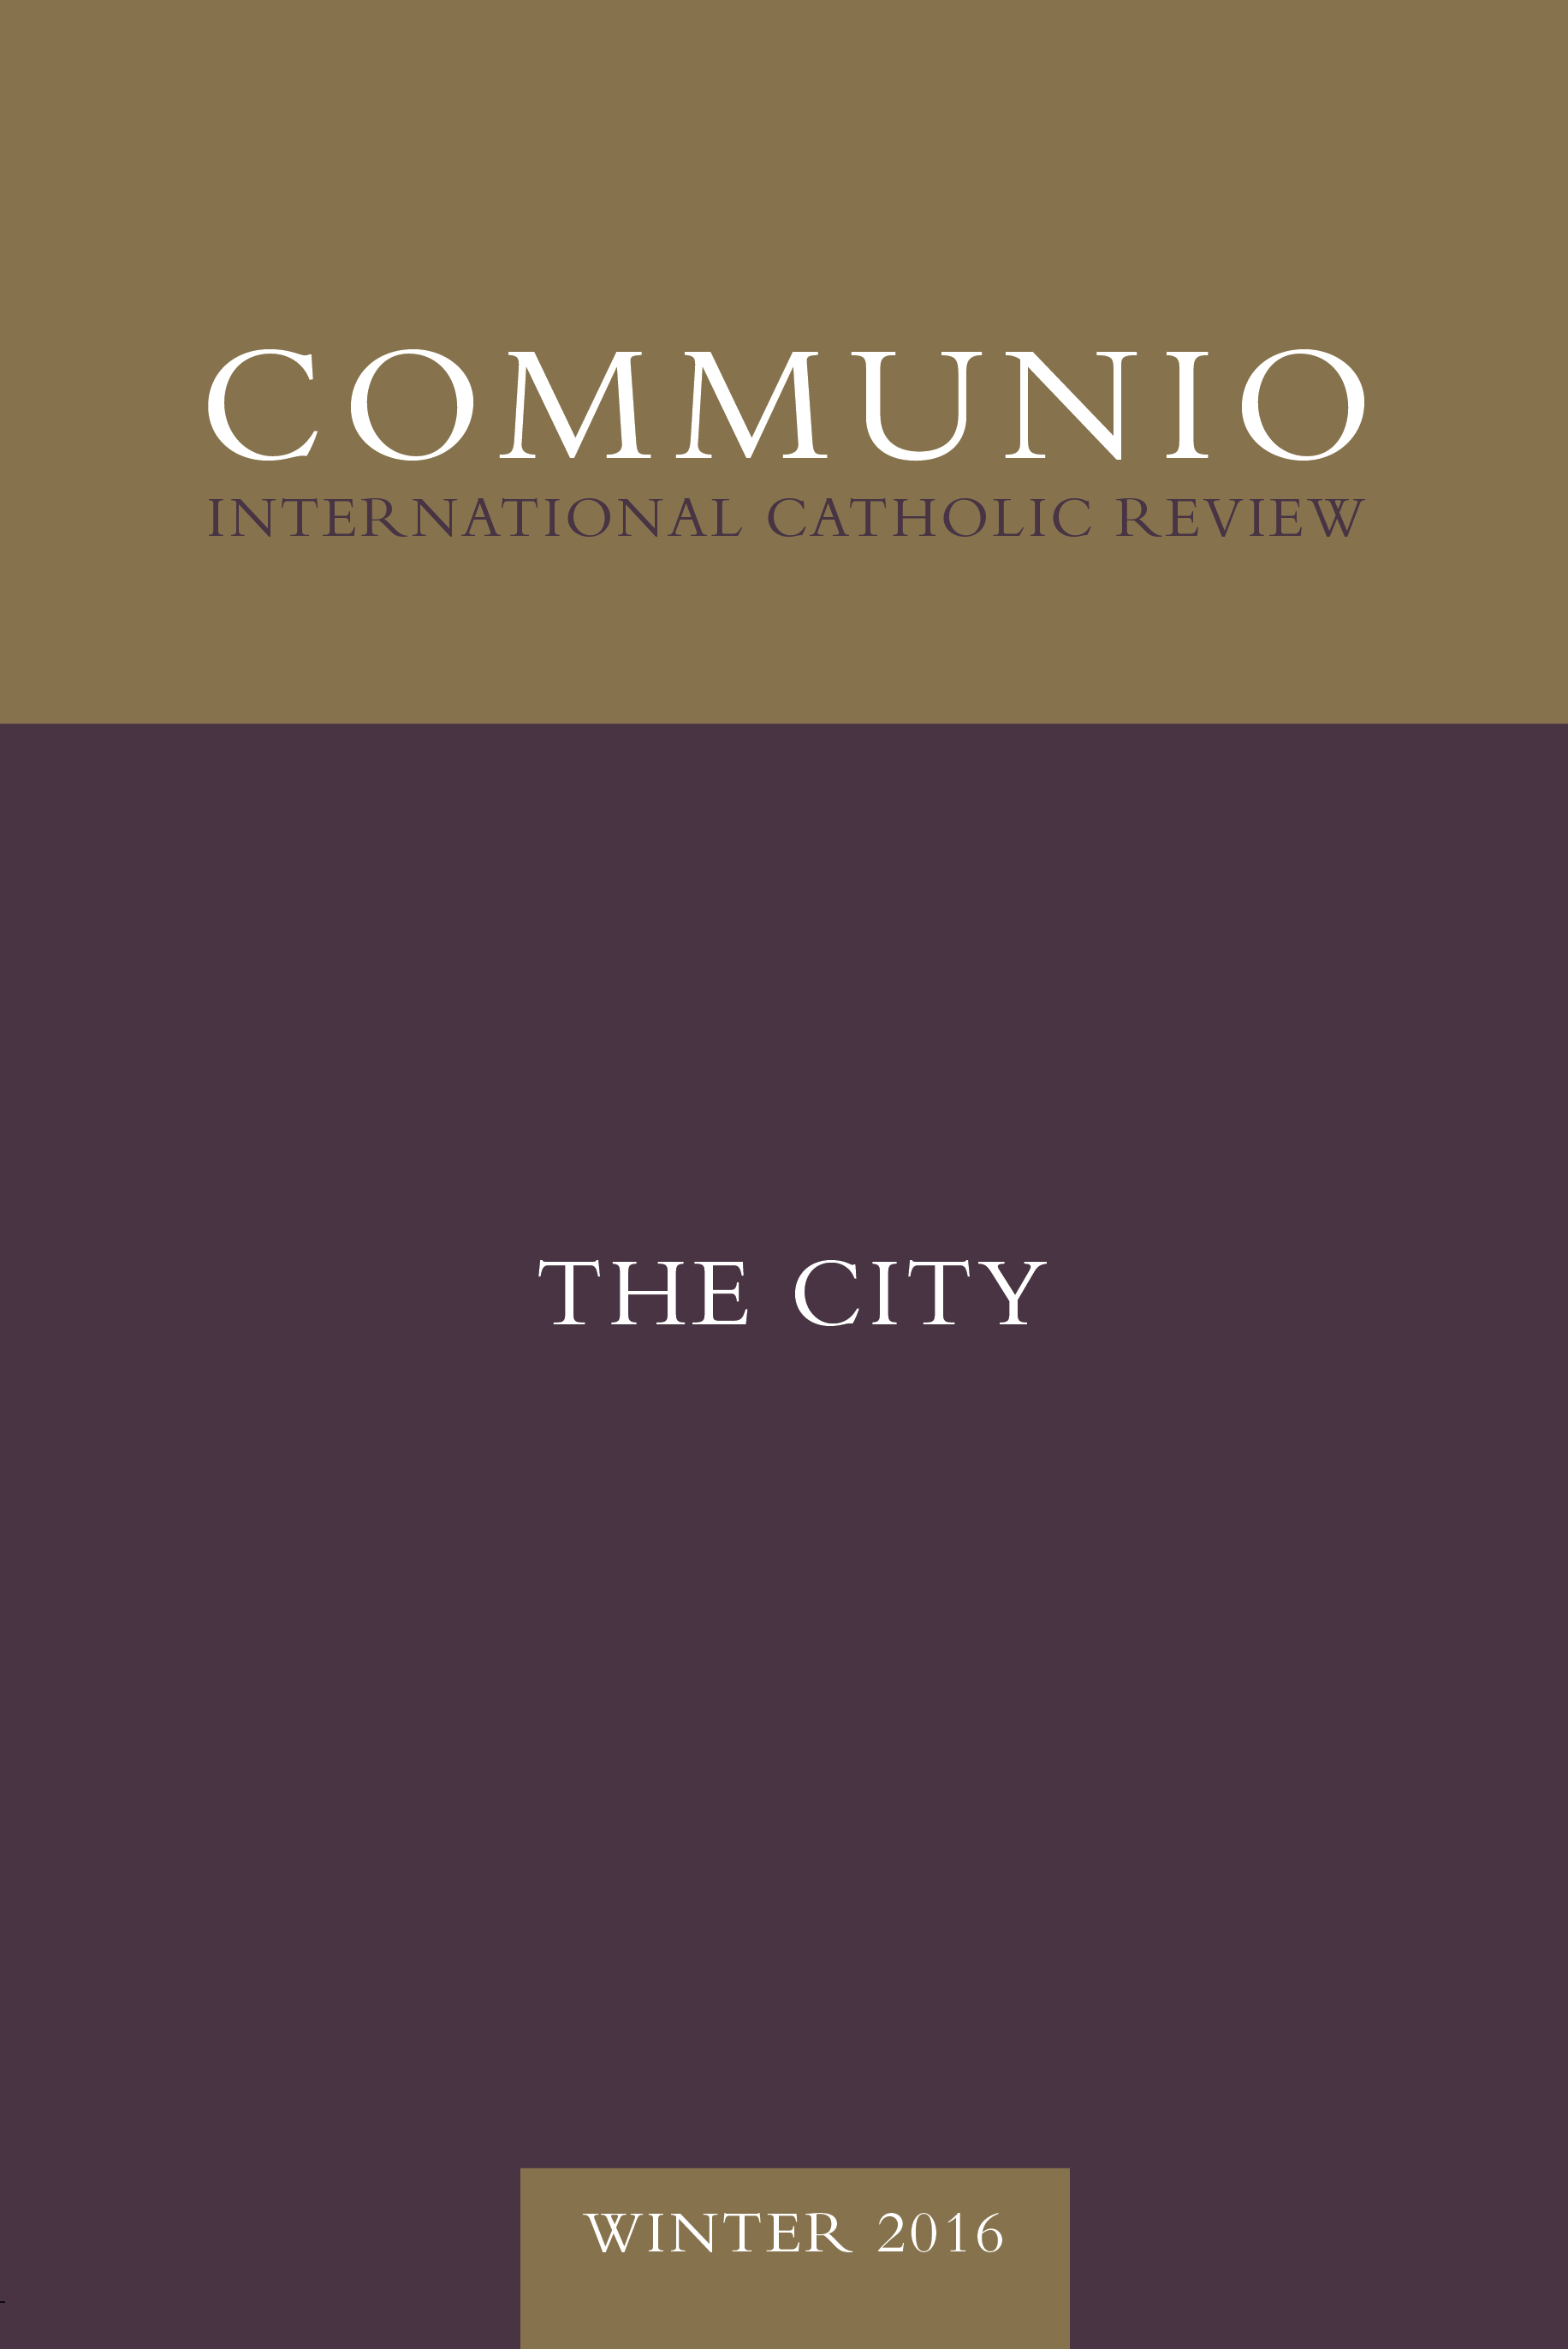 Communio - Winter 2016 - The City